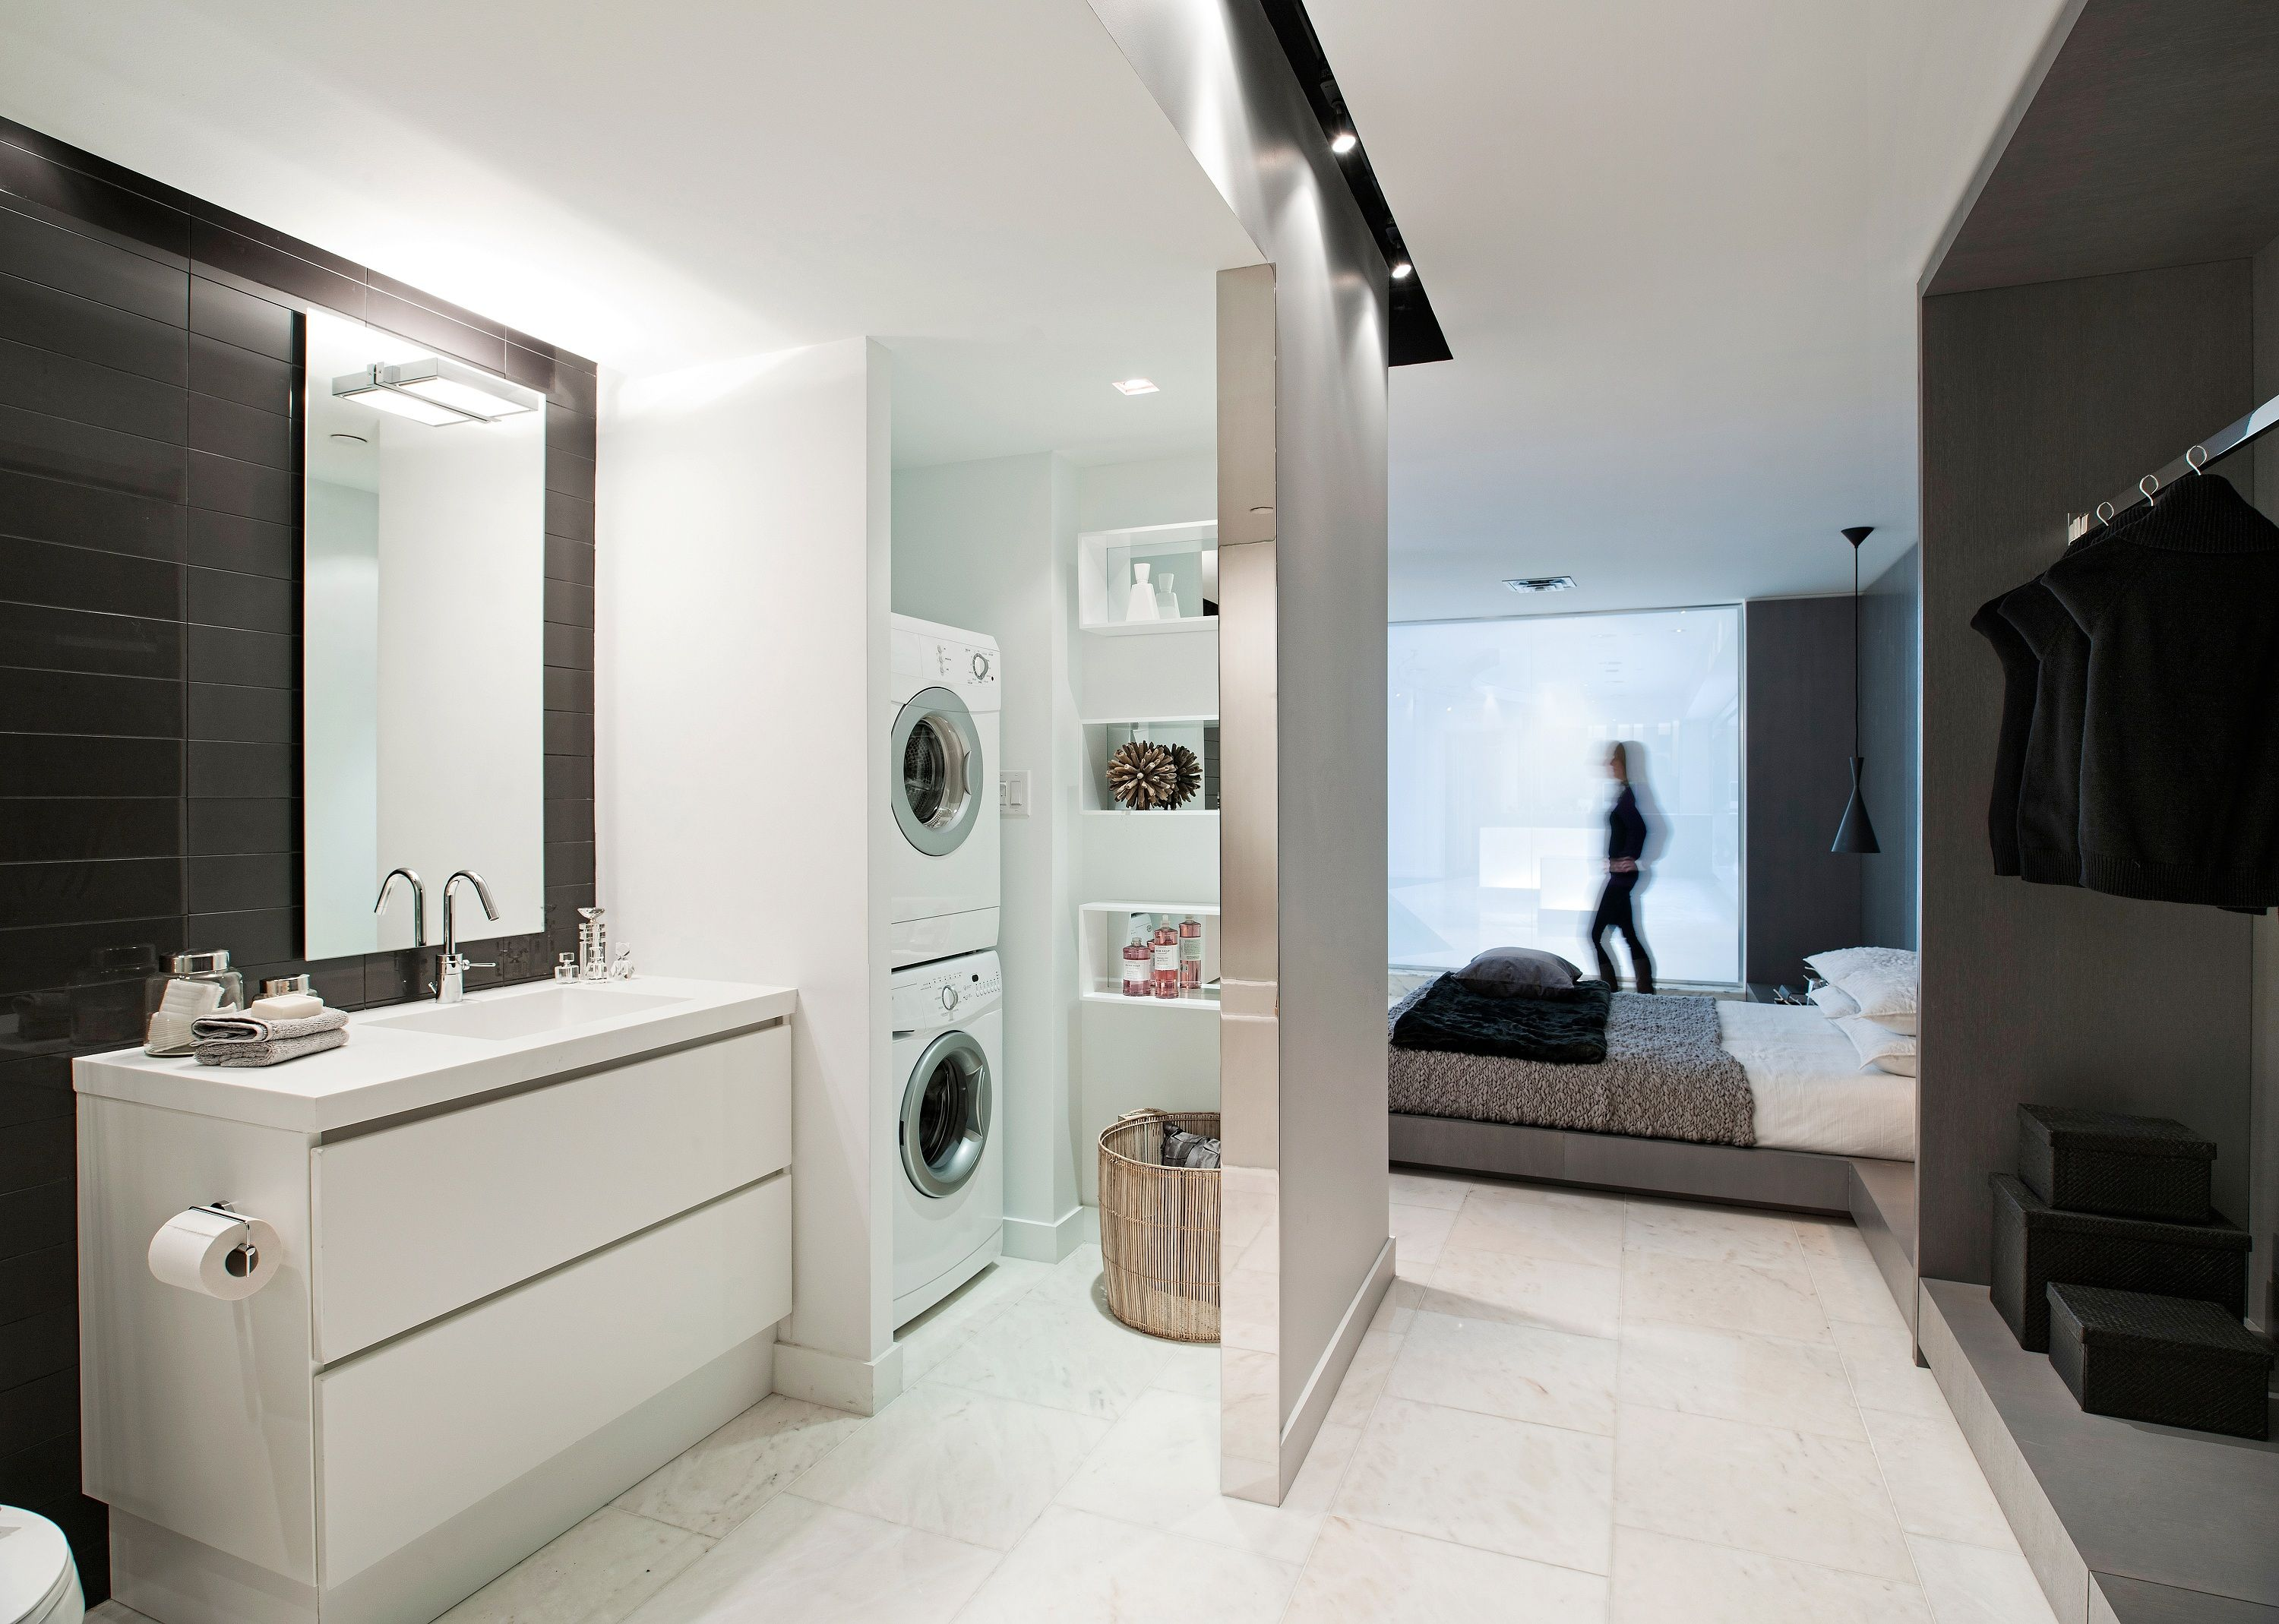 Bathroom and laundry room ideas - Ensuite In Laundry Perfect For Small Laundry Spaces